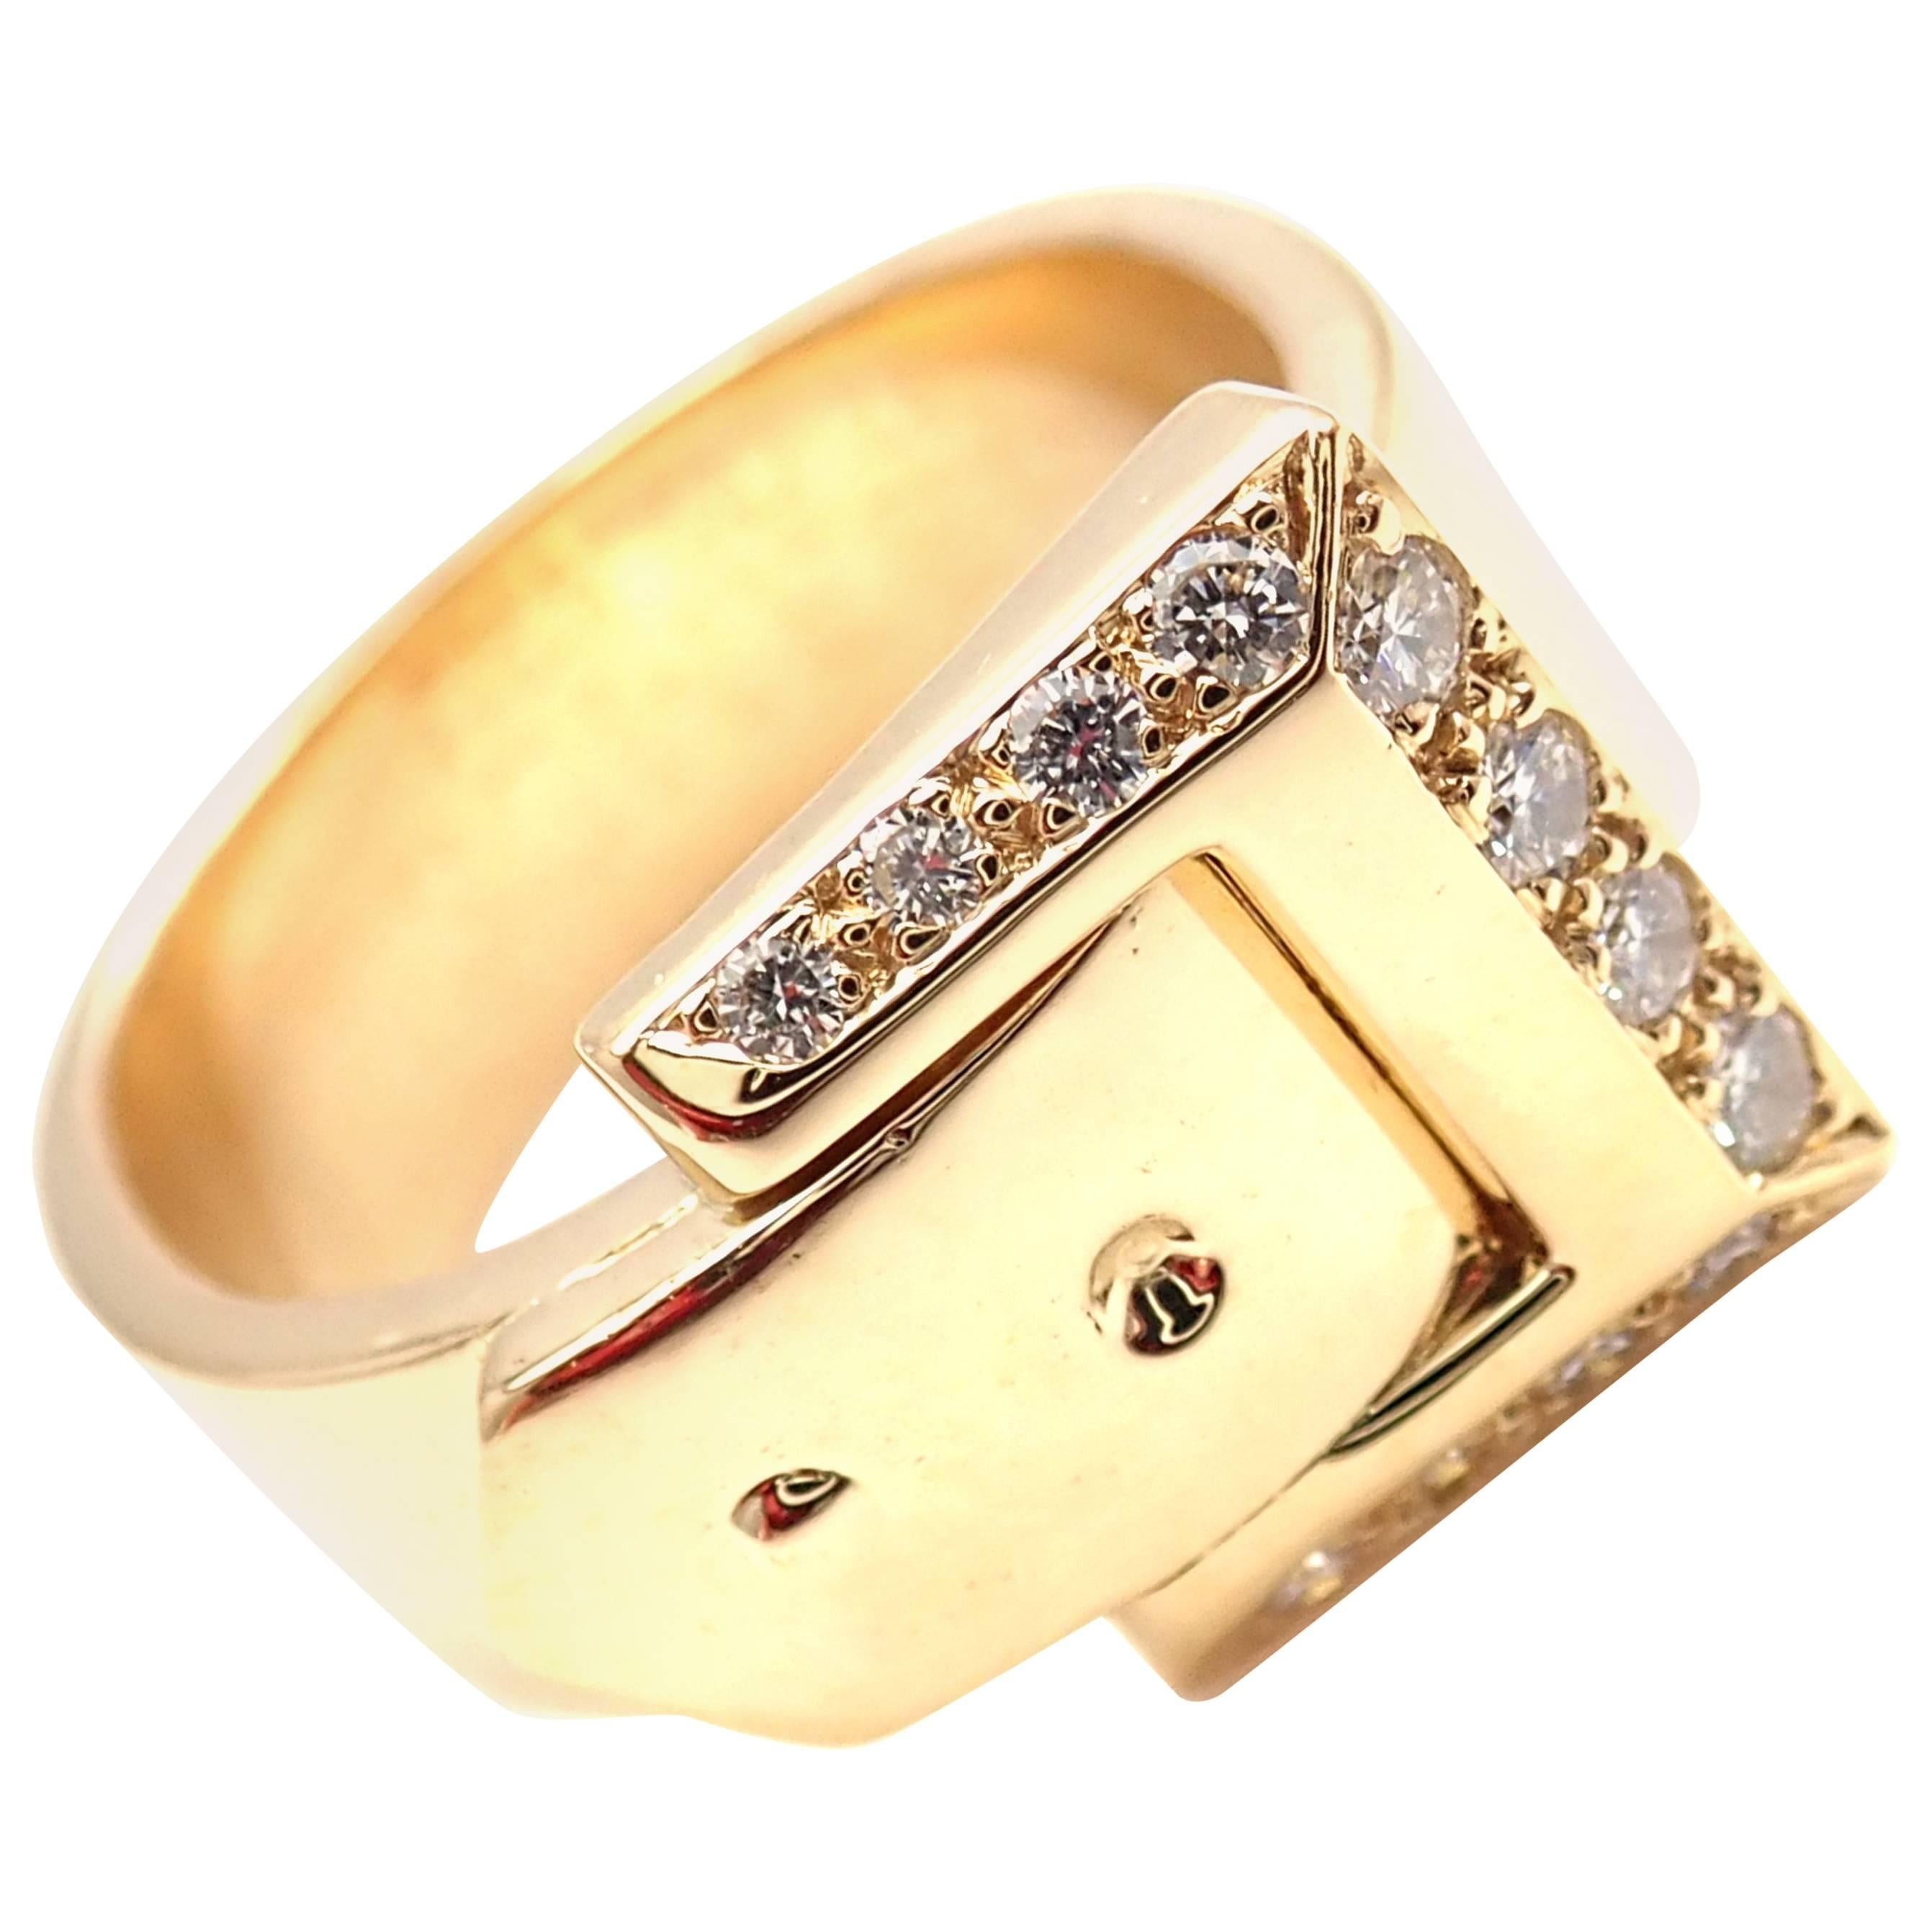 a0f39df03e93b get hermes wedding ring 017e4 8d856